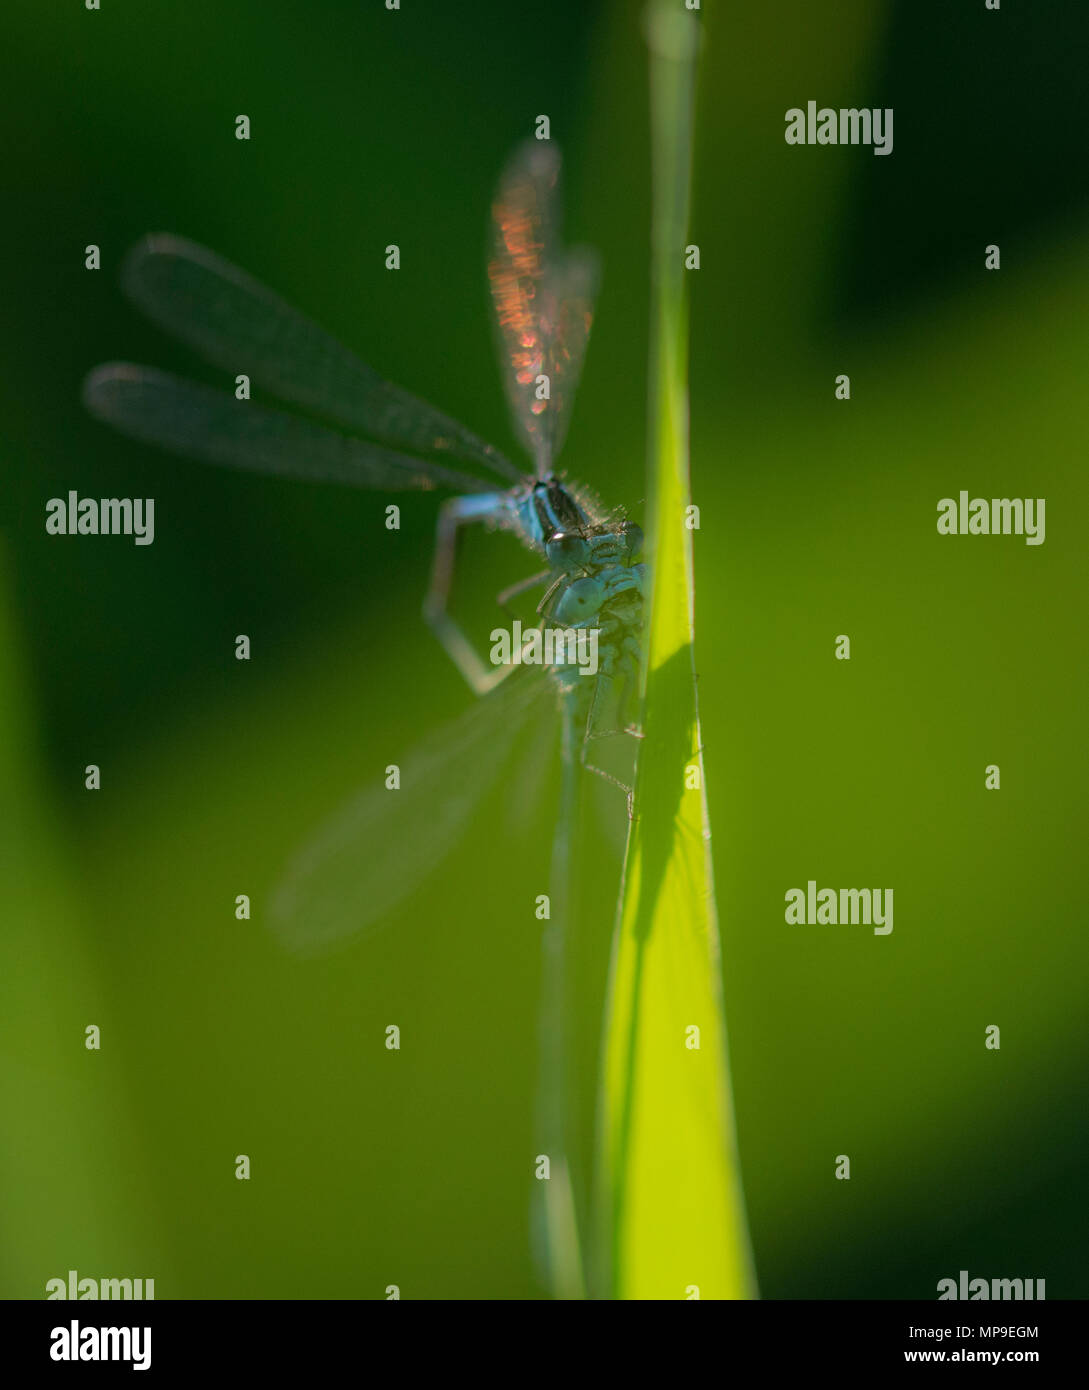 Cute damselfly on a blade of grass looking round - Stock Image